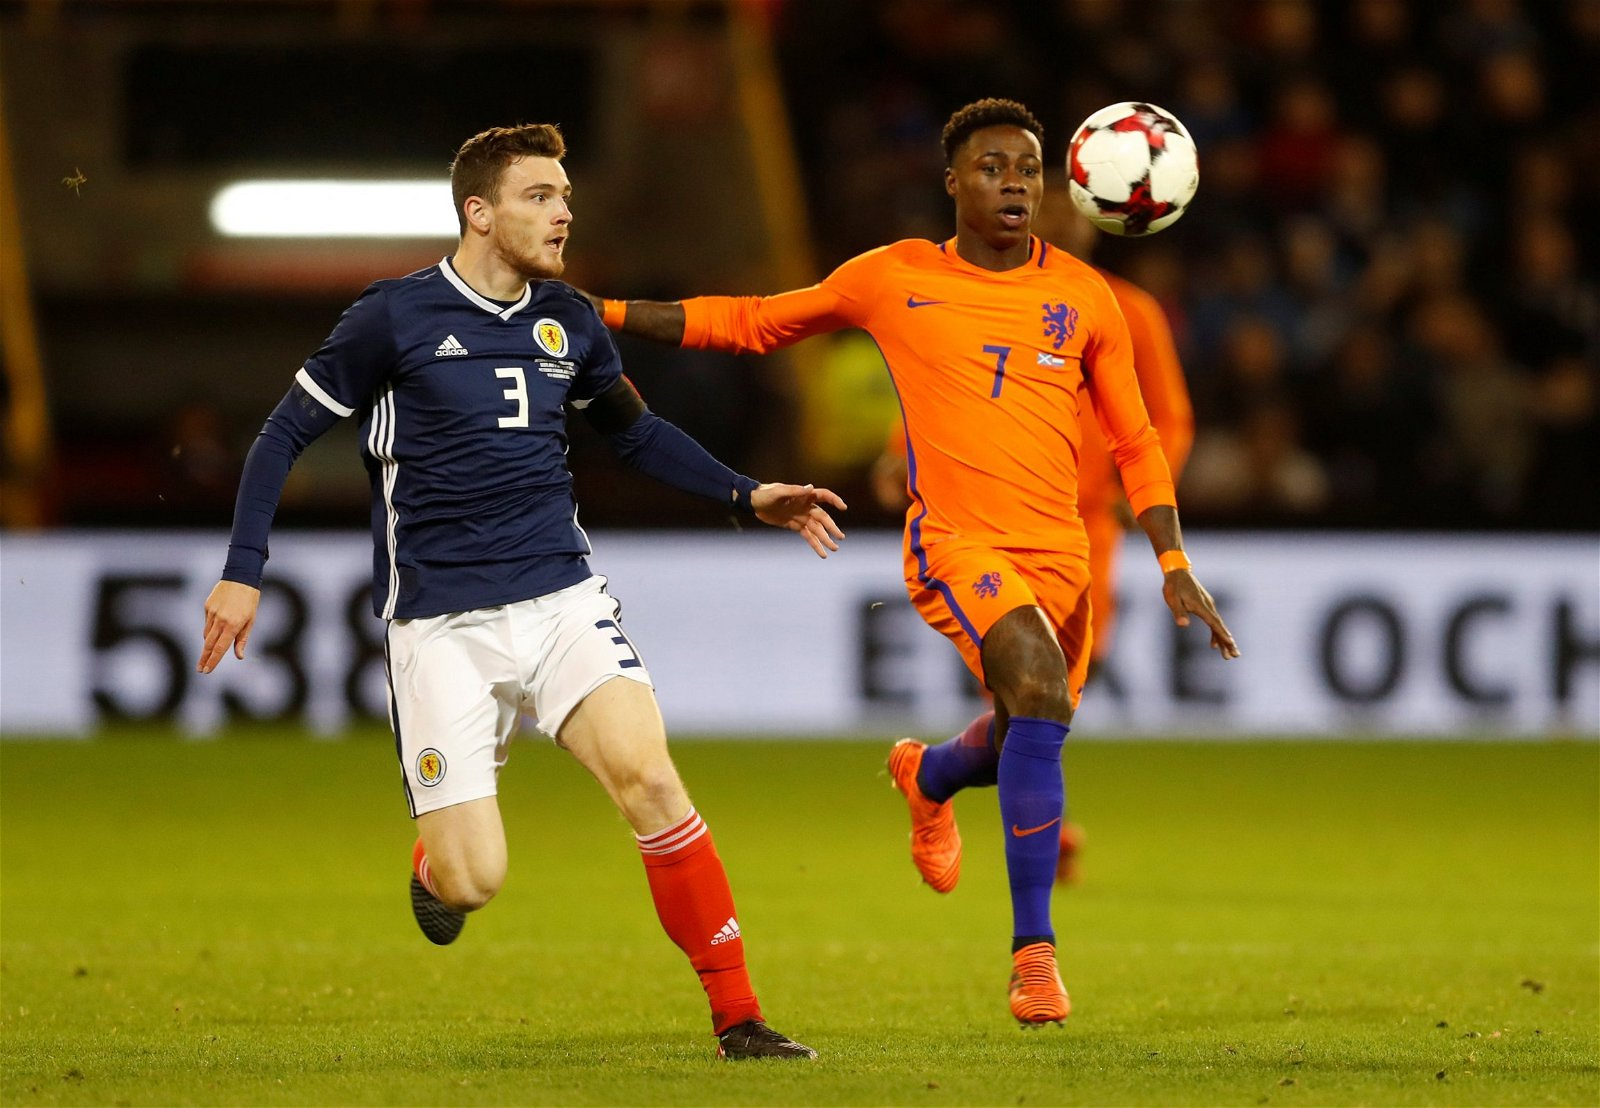 Liverpool's Andy Robertson in action for Scotland